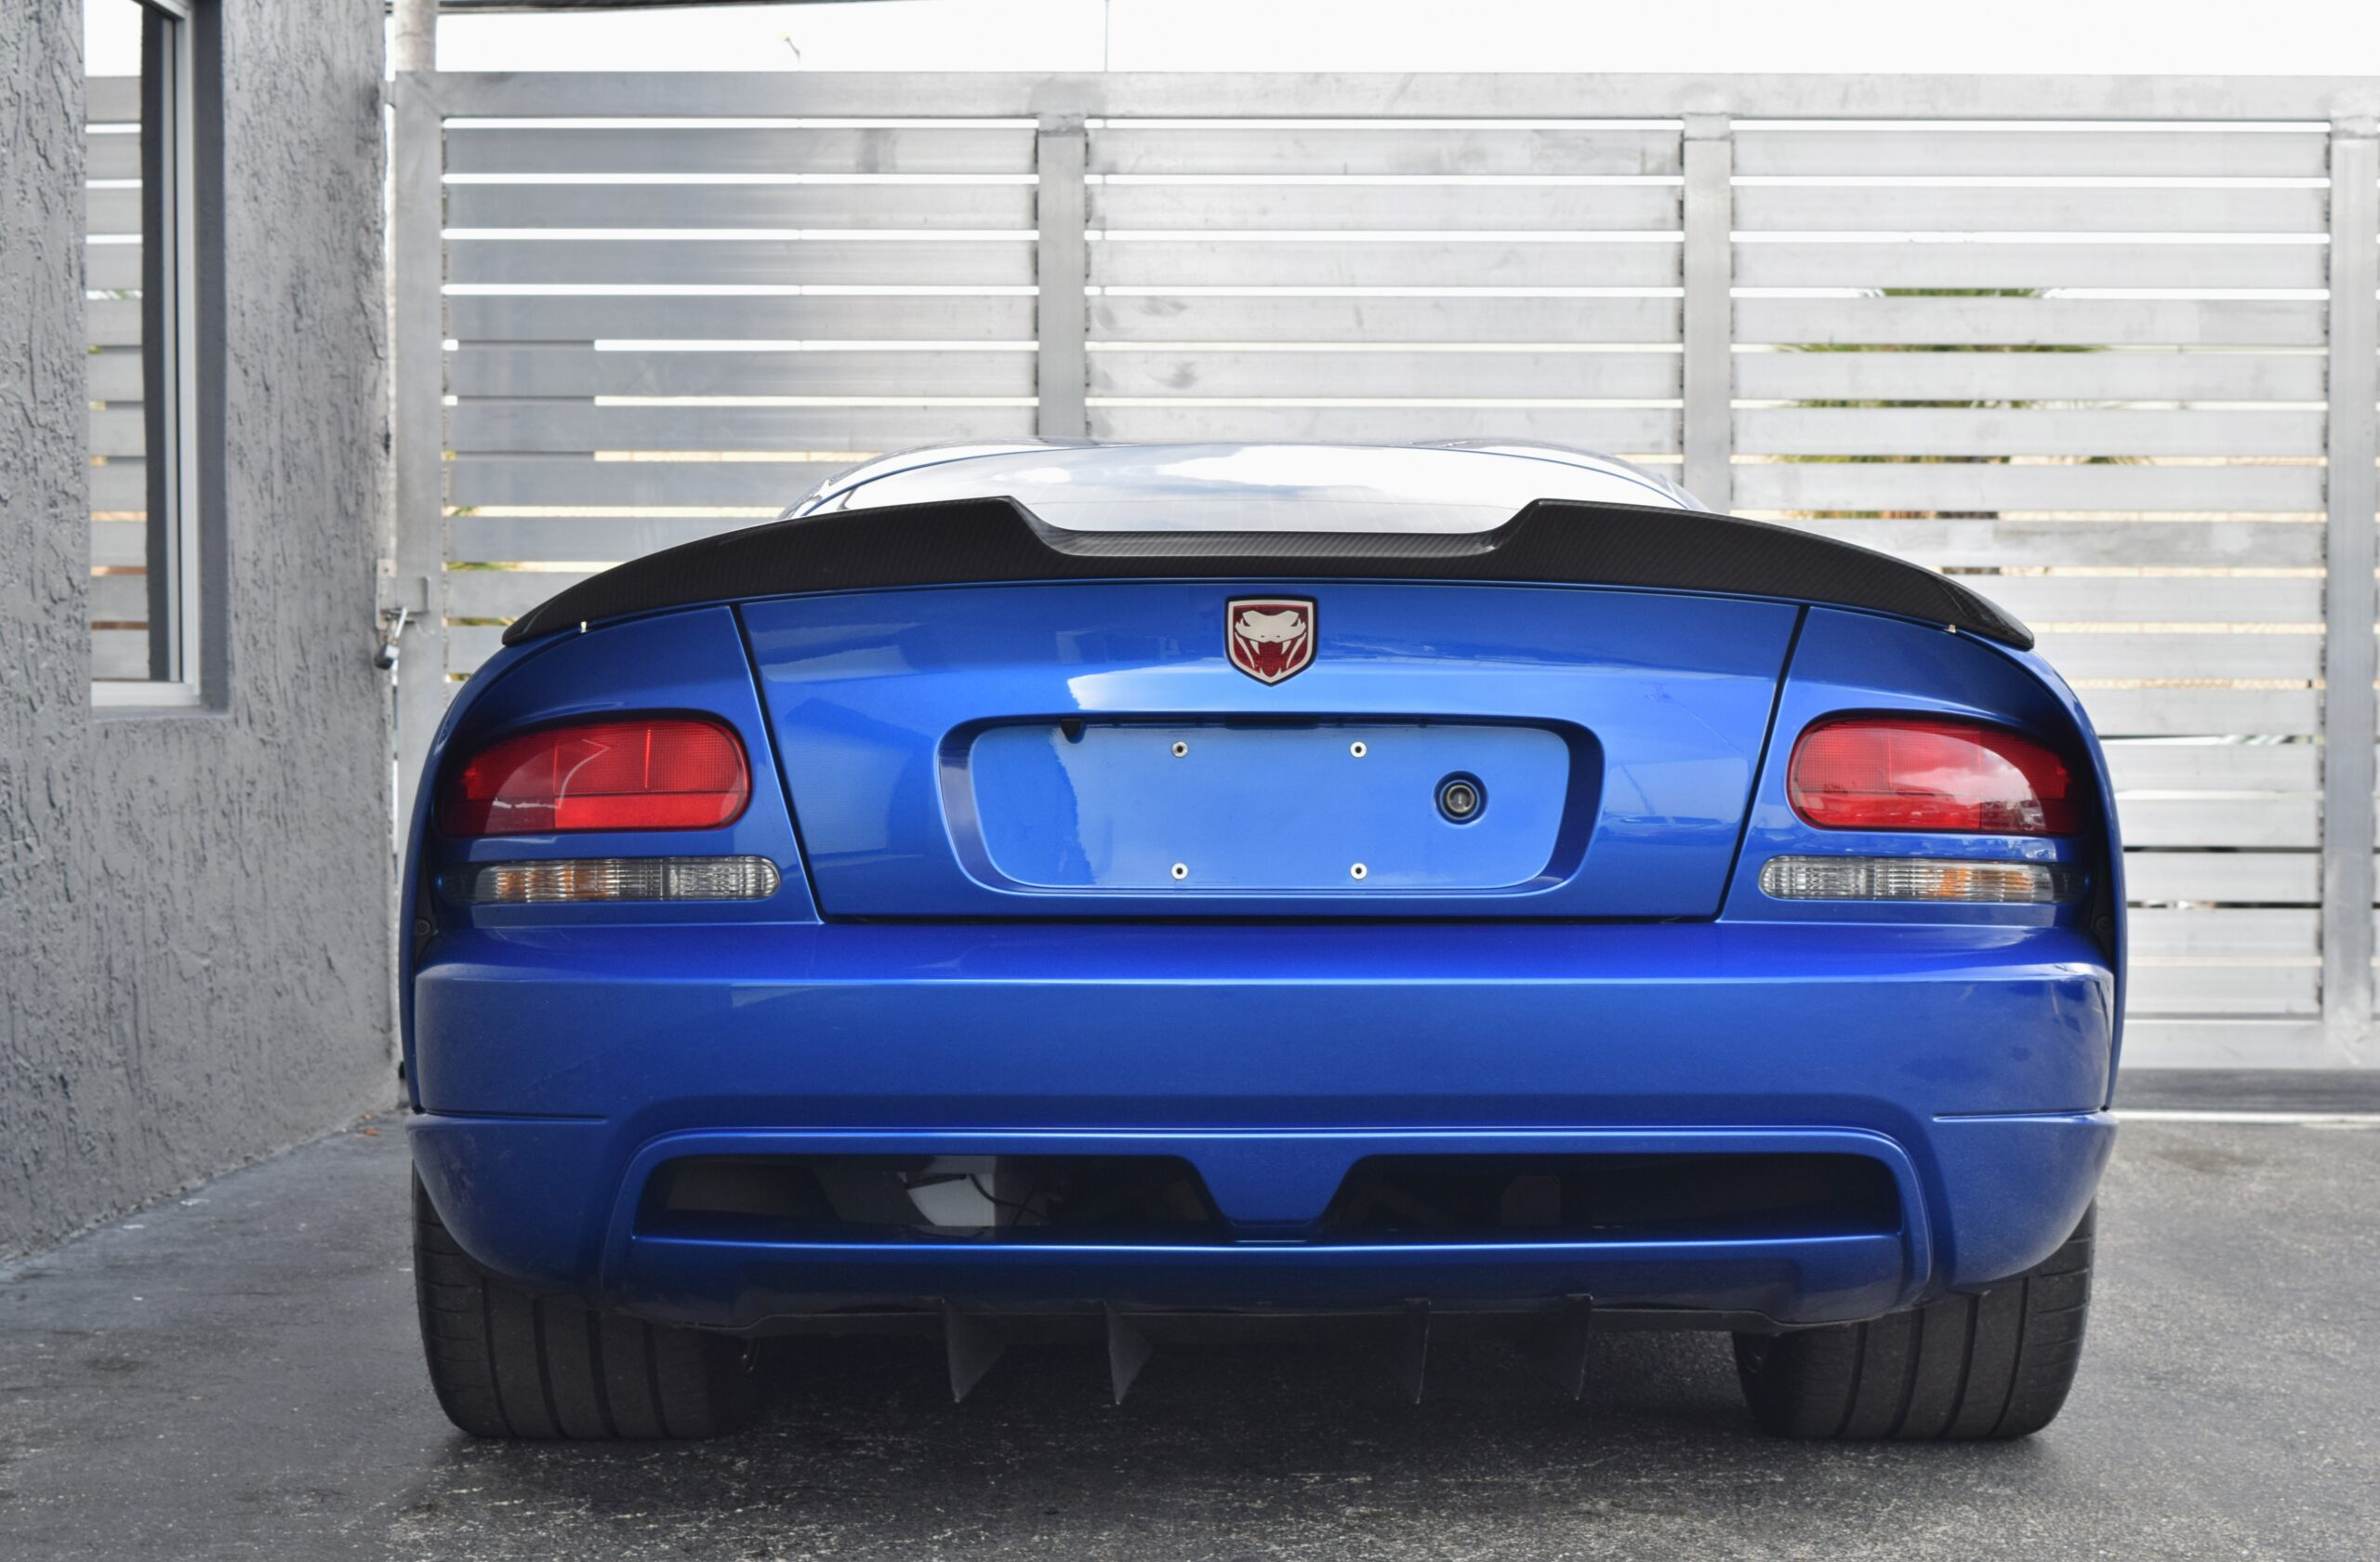 2010 Dodge Viper SRT-10 Like New only 15k Original Miles – Rare GTS Blue – Mint Condition – Fully Loaded